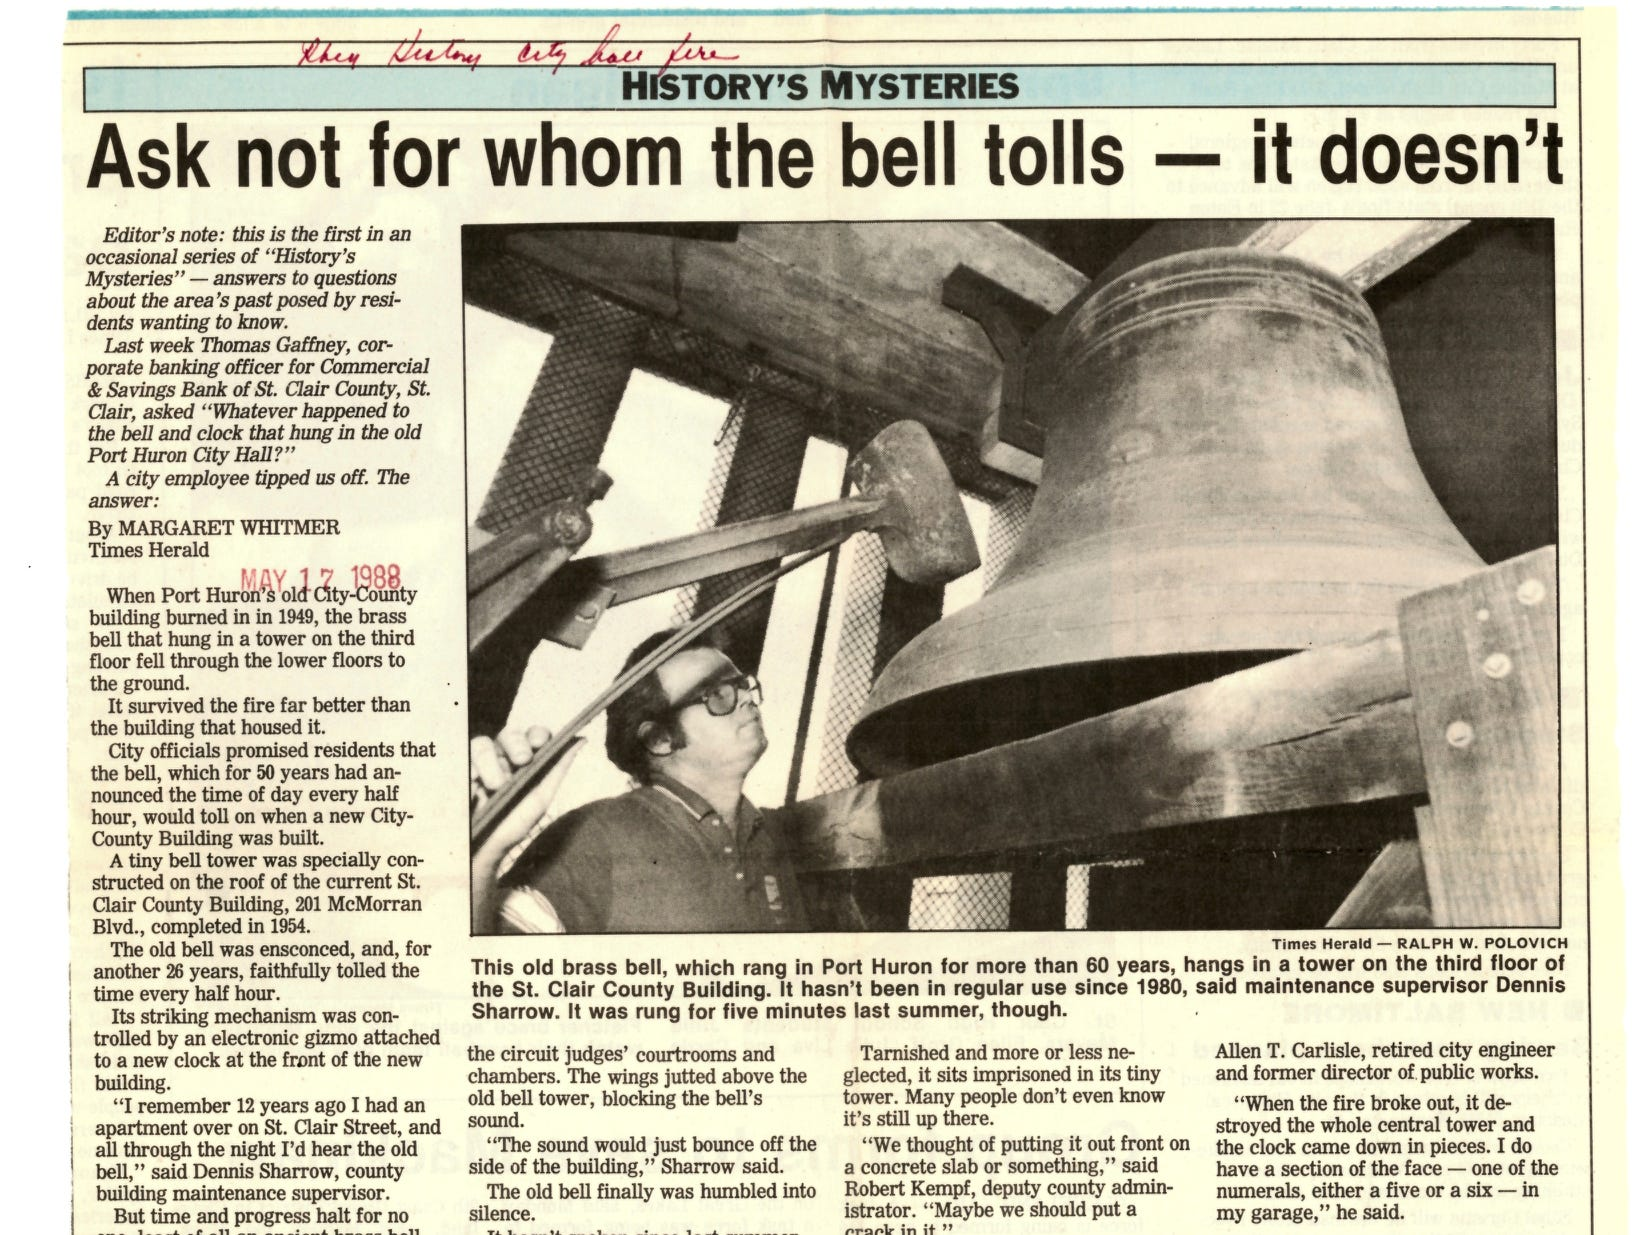 The bell is now housed in a special bell tower that was constructed on the roof of the current St. Clair County building at 201 McMorran Blvd., which was completed in 1954.